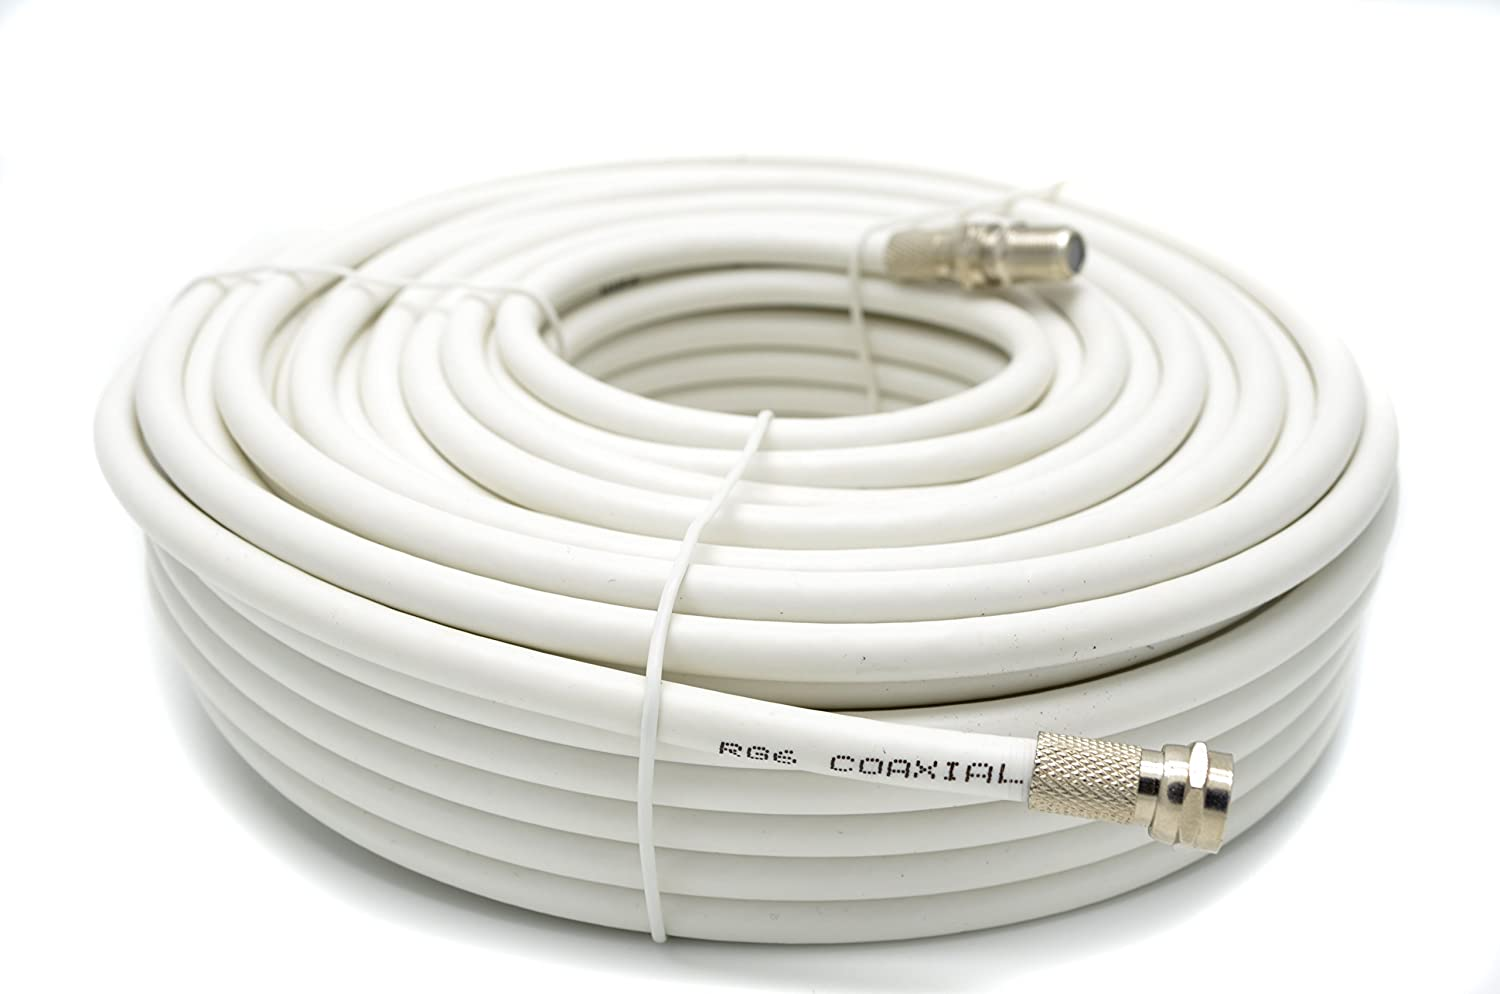 Sky Satellites Kit de cable de extensión coaxial 10 m RG6 TV, con conectores F para Sky HD, Freesat y Virgin – Color blanco: Amazon.es: Electrónica